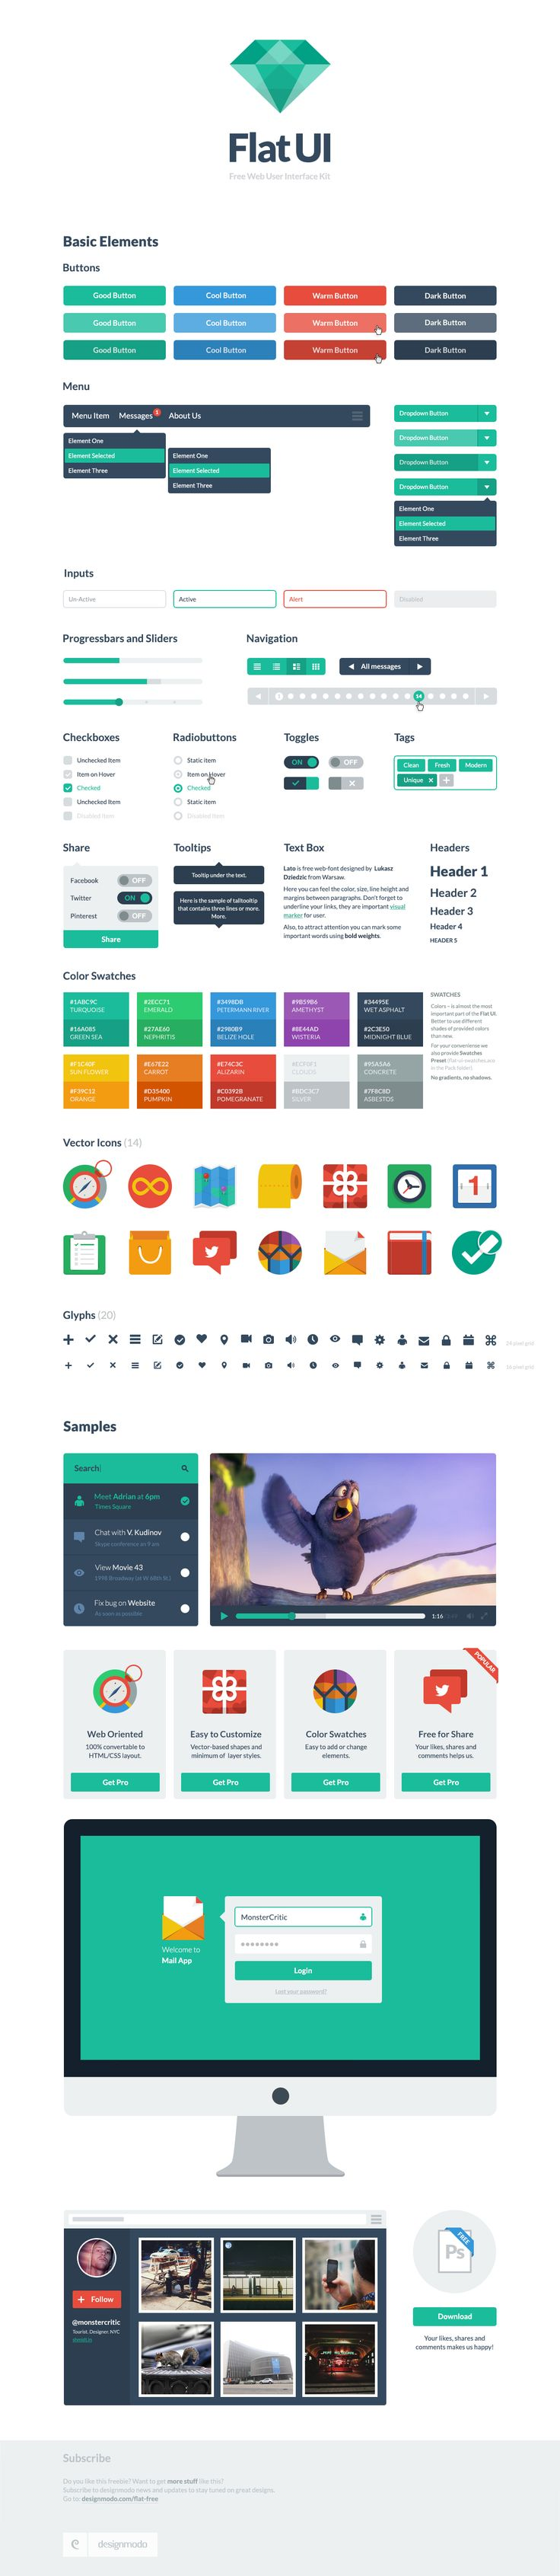 Flat UI Free - Flat UI Free is made on the basis of Twitter Bootstrap in a stunning flat-style, and the kit also includes a PSD version for designers.